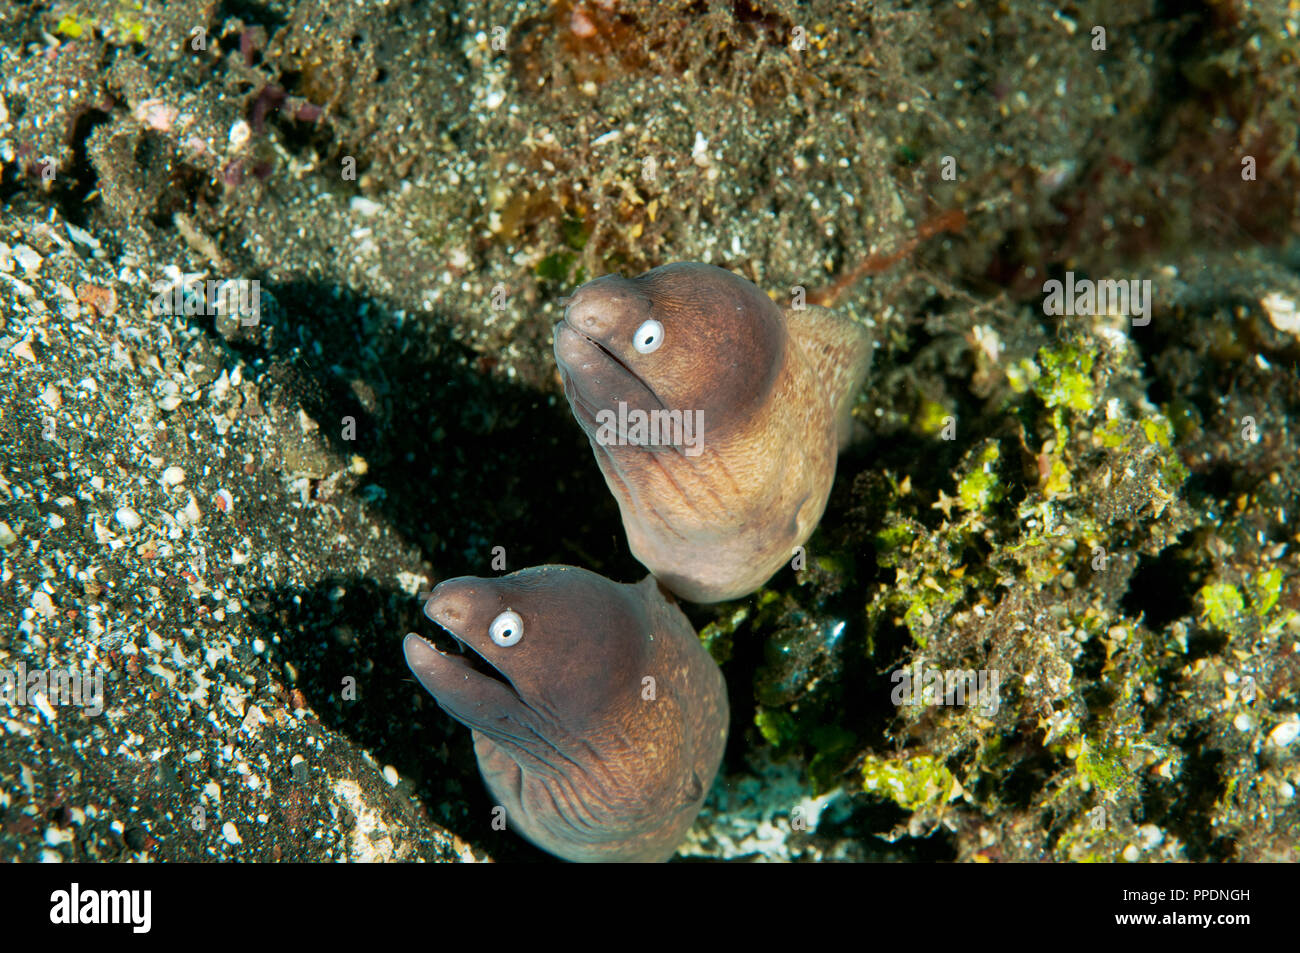 White eyed moray, Siderea thysoidea, Bali Indonesia. - Stock Image